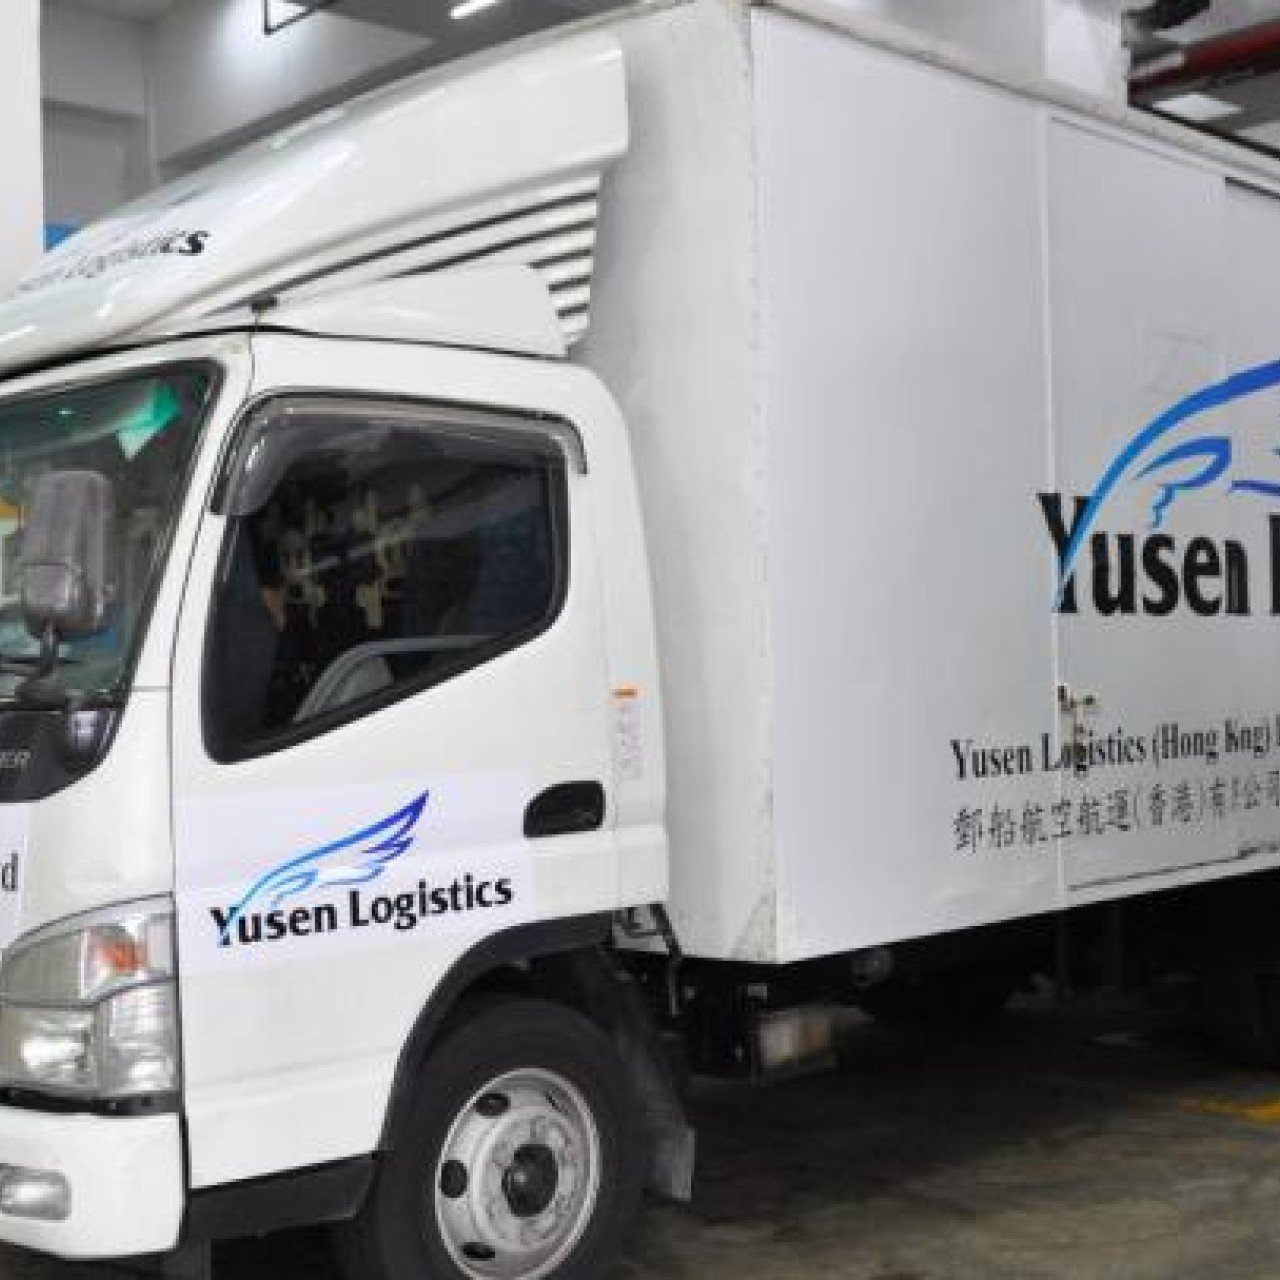 Yusen Logistics drives trade | South China Morning Post